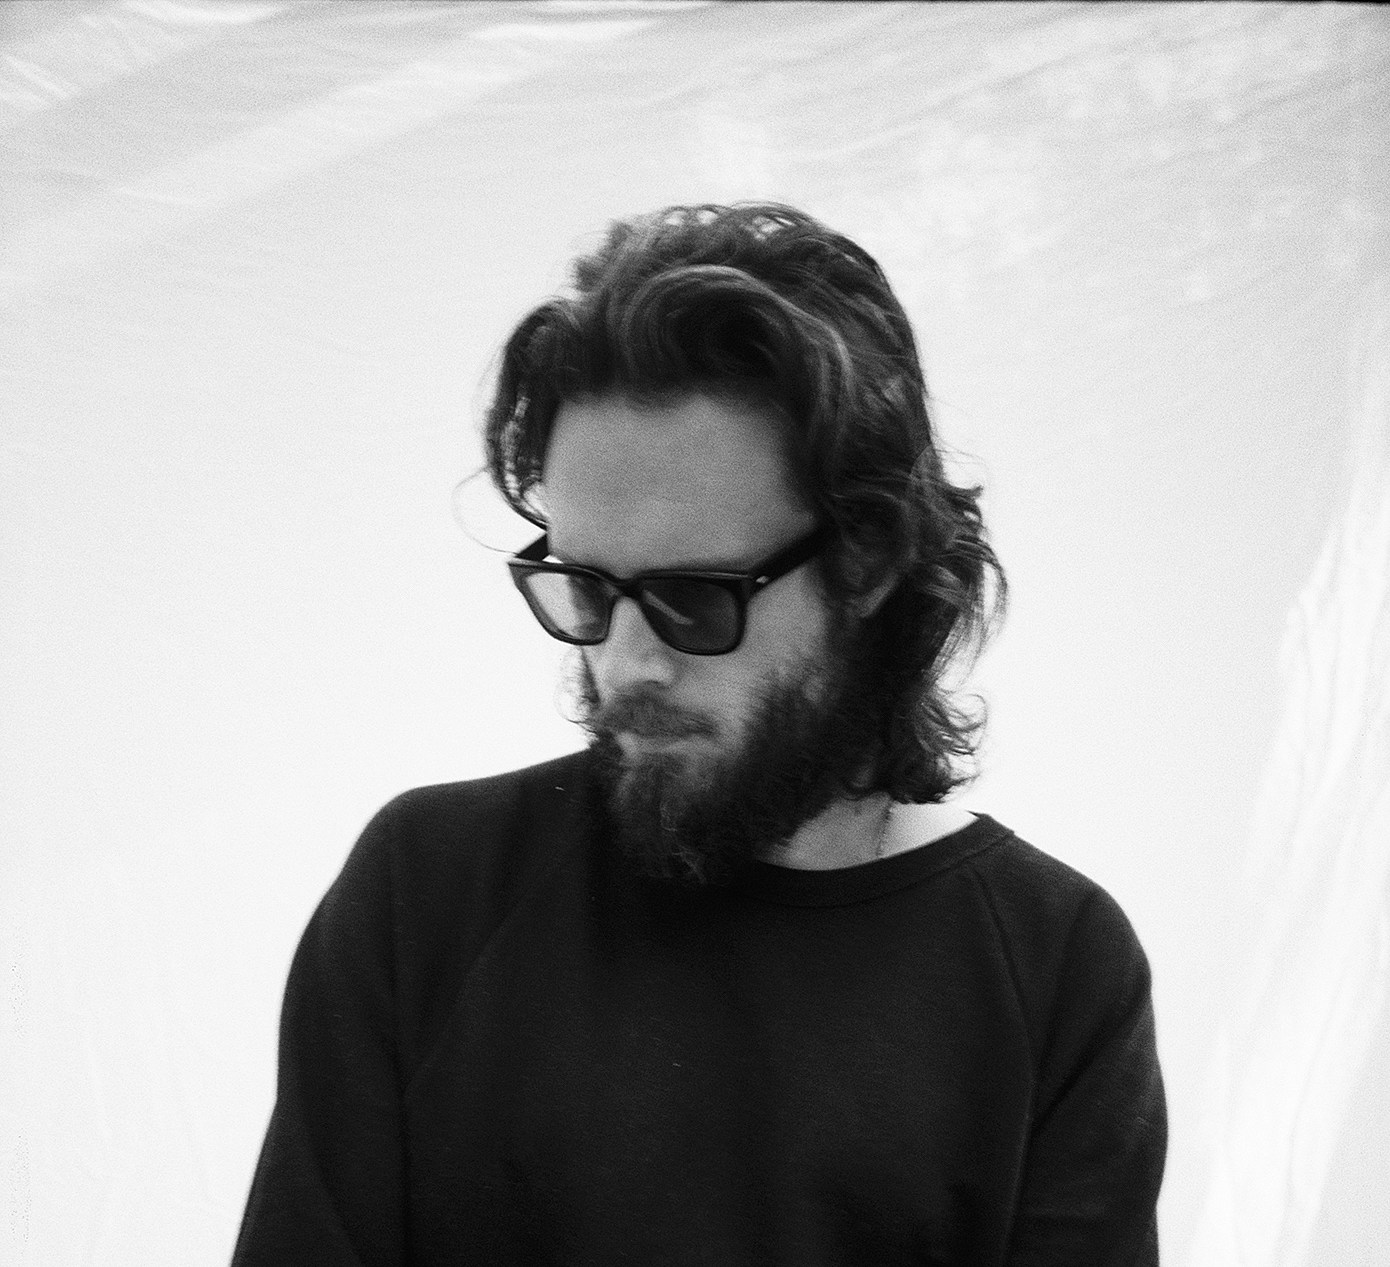 Indie rock artist Father John Misty to play Agora in September